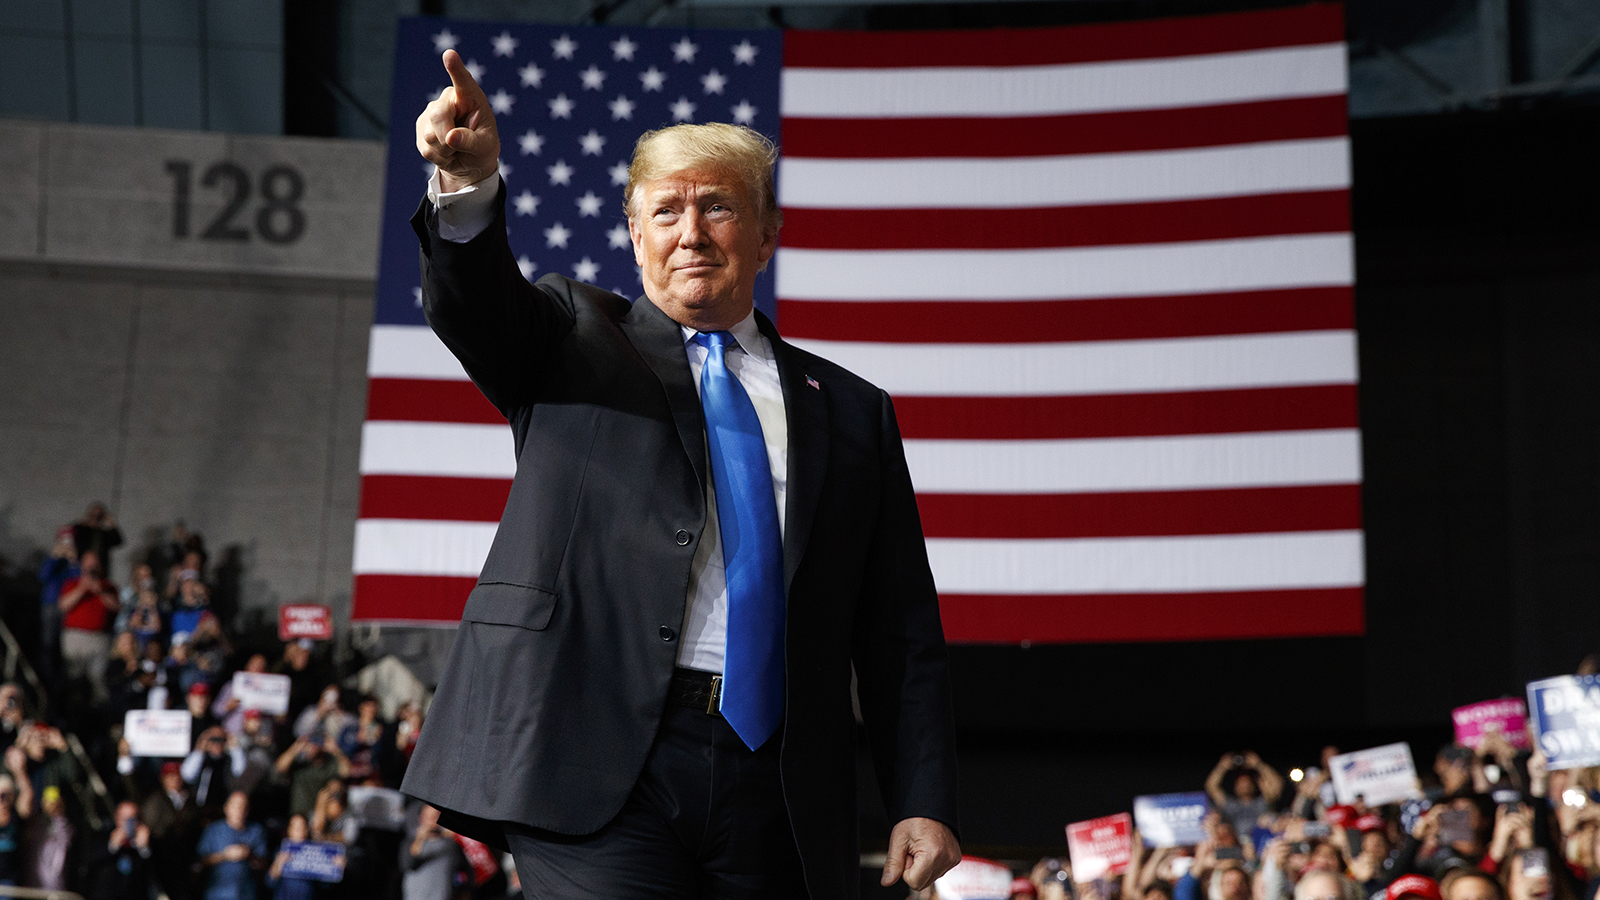 President Trump arrives to speak at a campaign rally at the IX Center, in Cleveland, on Nov. 5, 2018. (AP Photo/Carolyn Kaster)